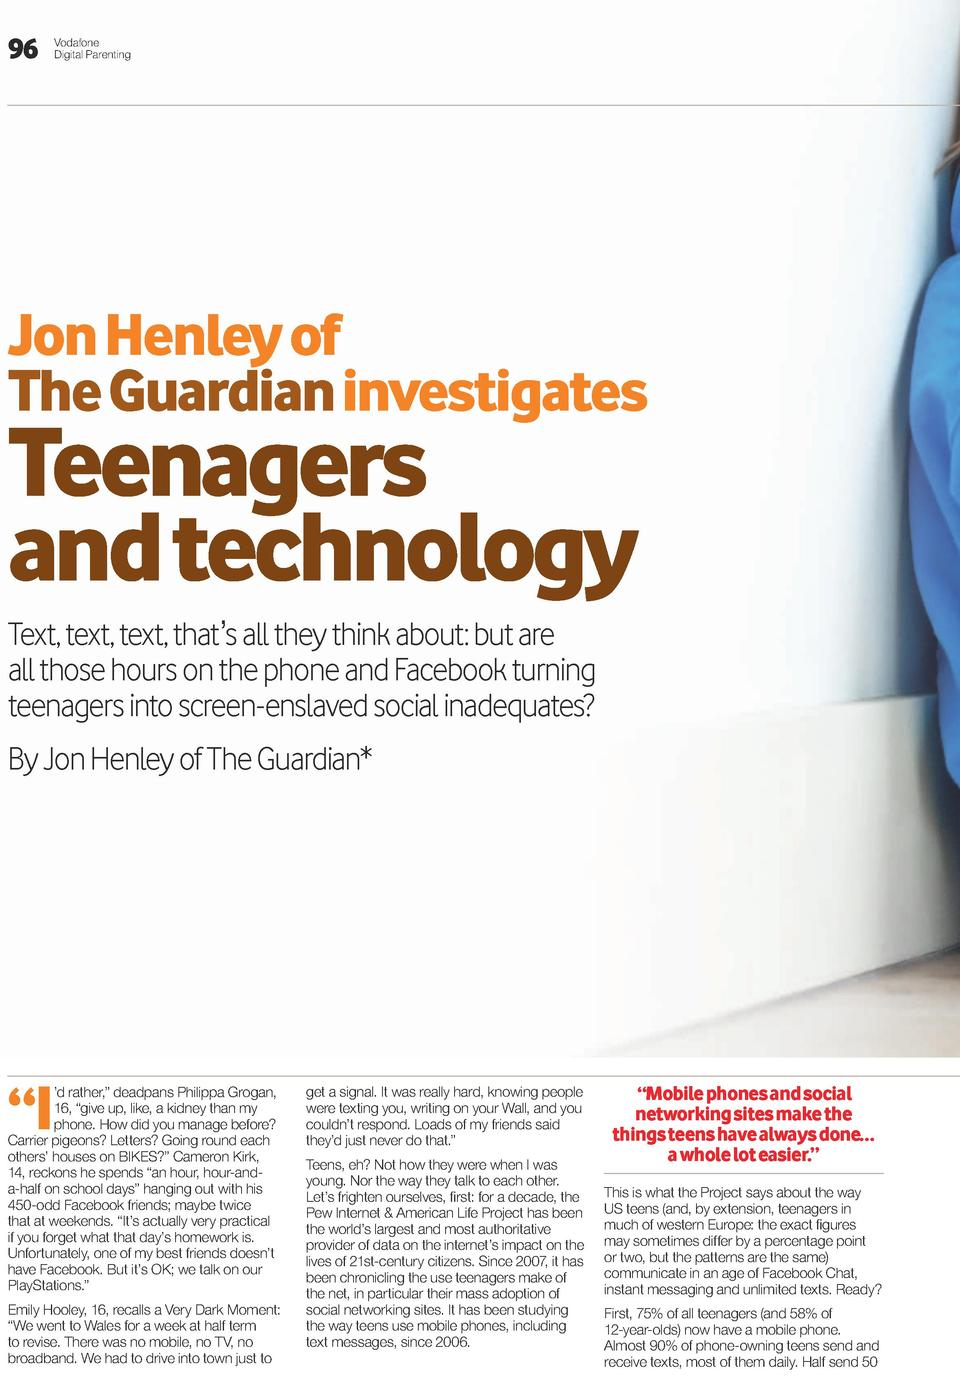 96  Vodafone Digital Parenting  Jon Henley of the Guardian investigates  teenagers and technology Text, text, text, that  ...